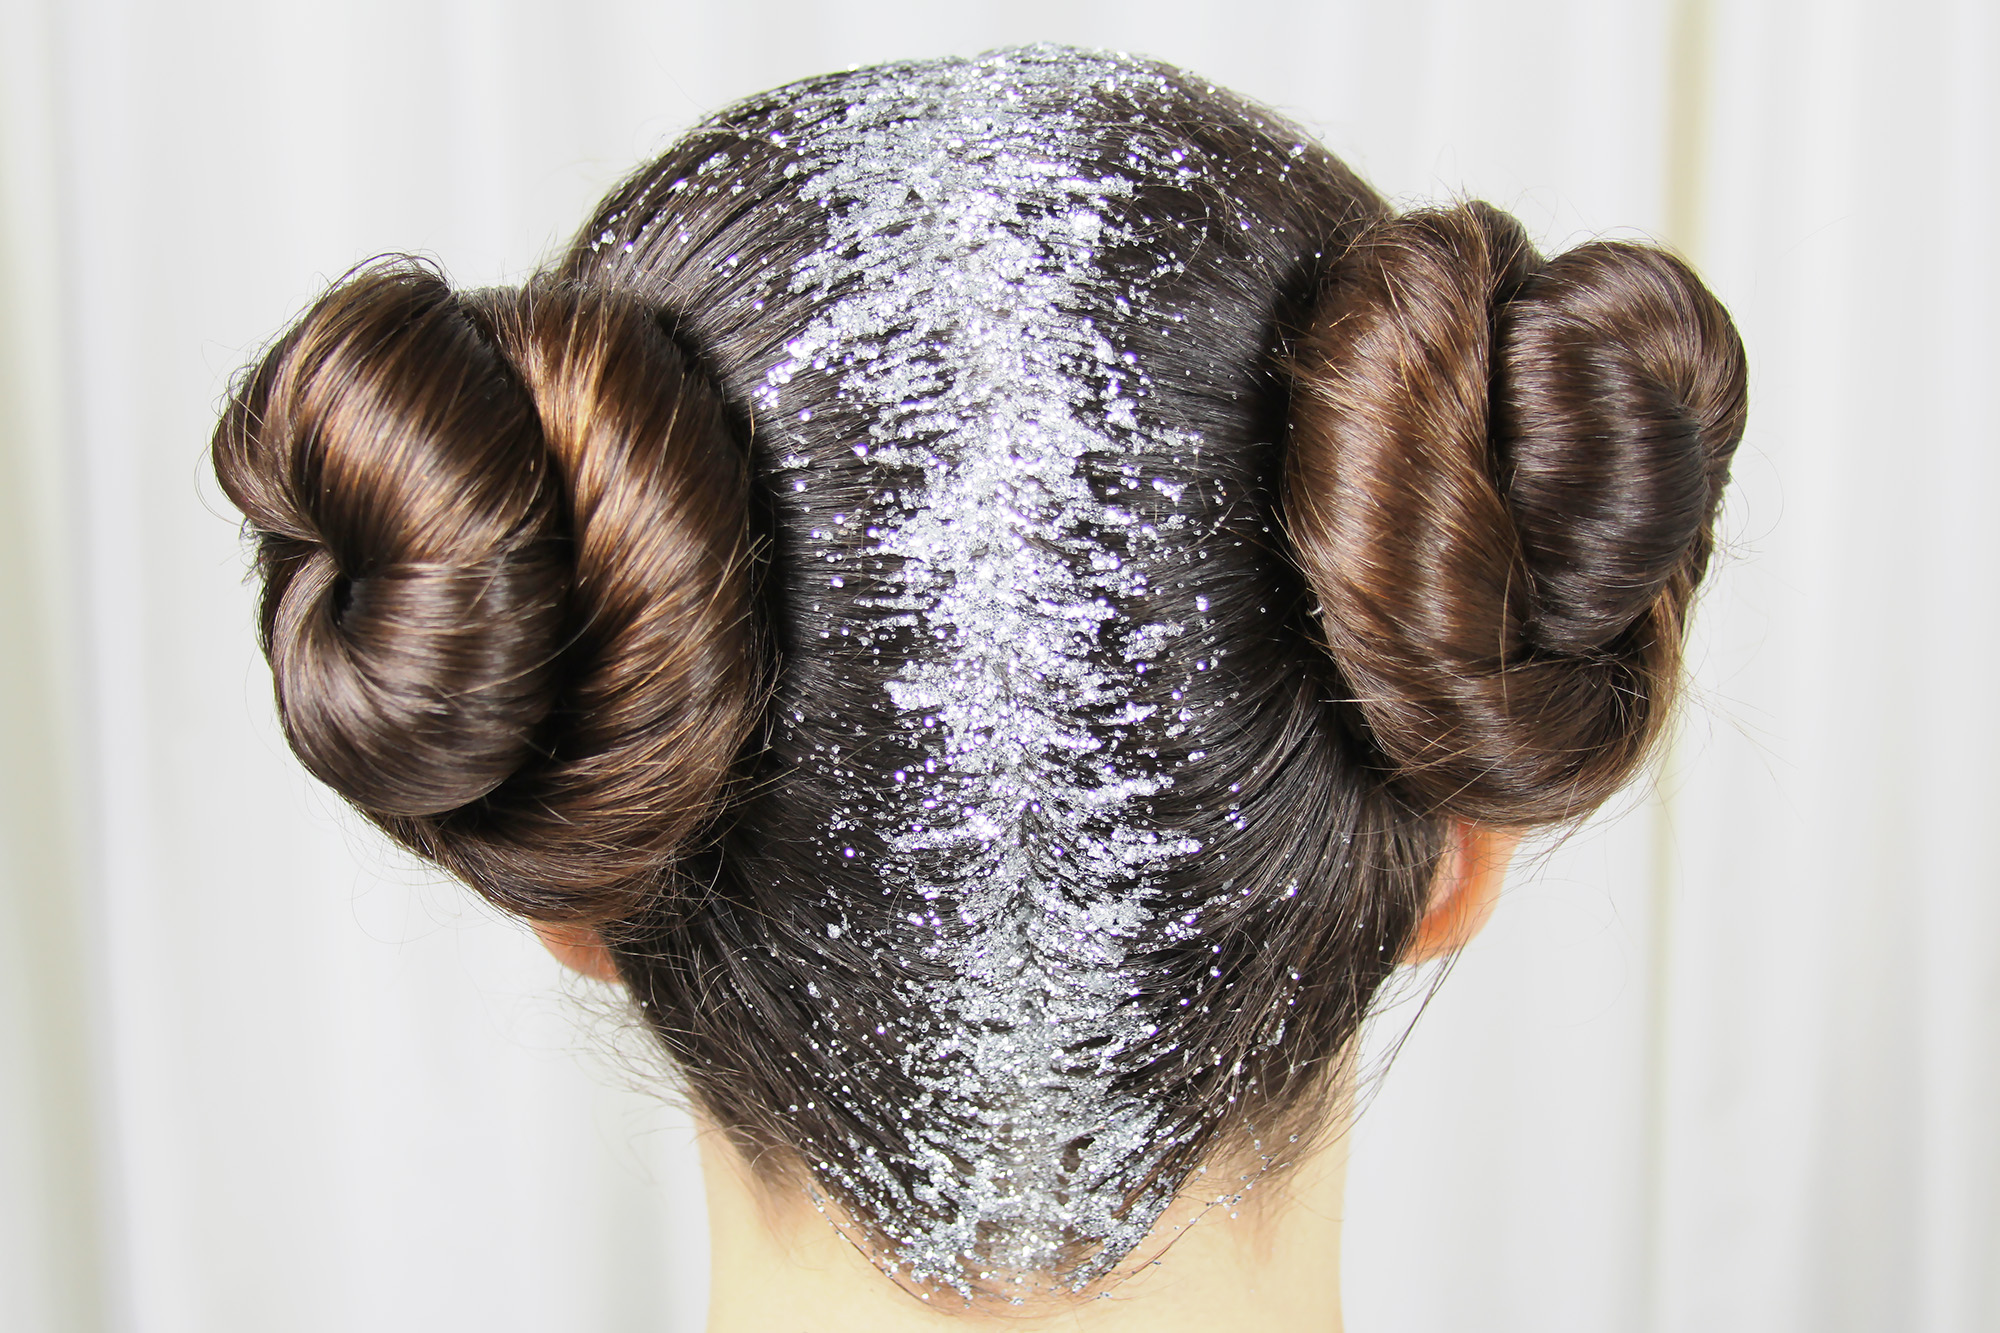 Glitter For Carrie - Star Wars Princess Leia inspired hairstyle with silver glitter